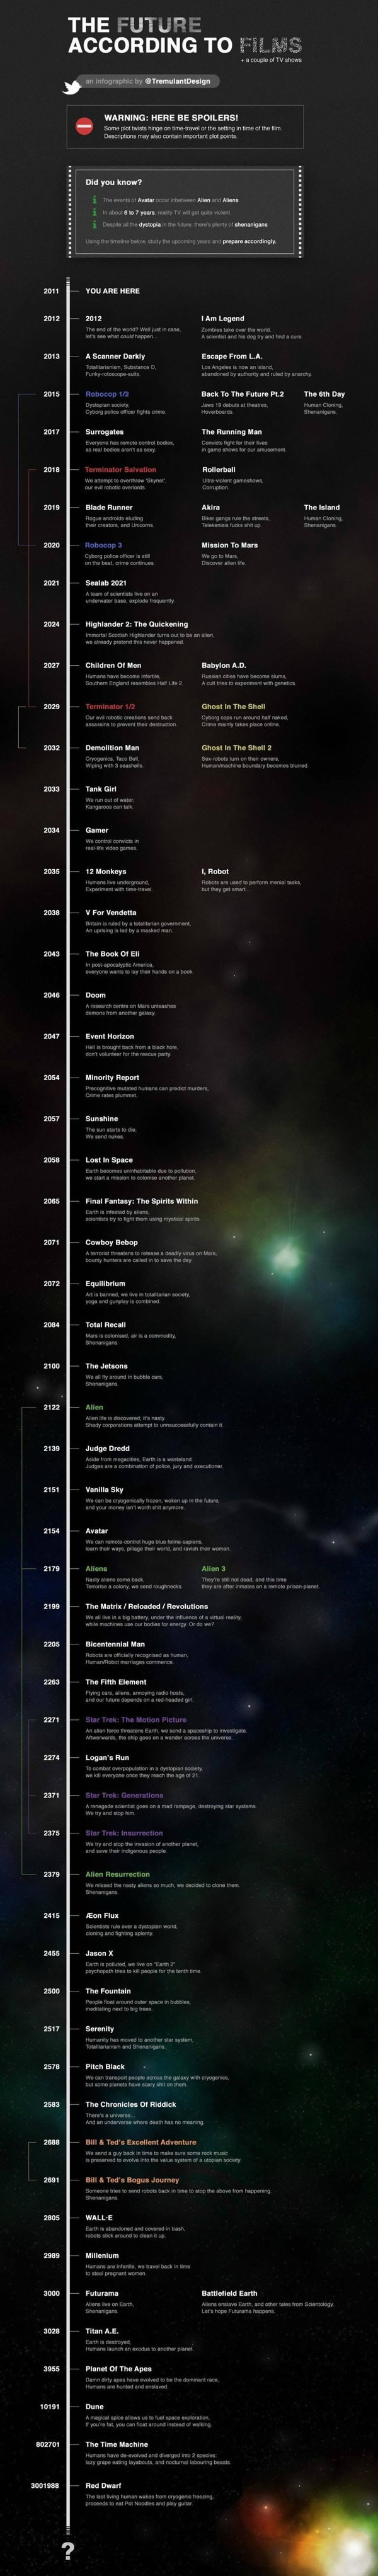 A long timeline showing movies and TV shows depicting the future and the years in which they will take place, from 2012 (2012) to 3001988 (Red Dwarf).